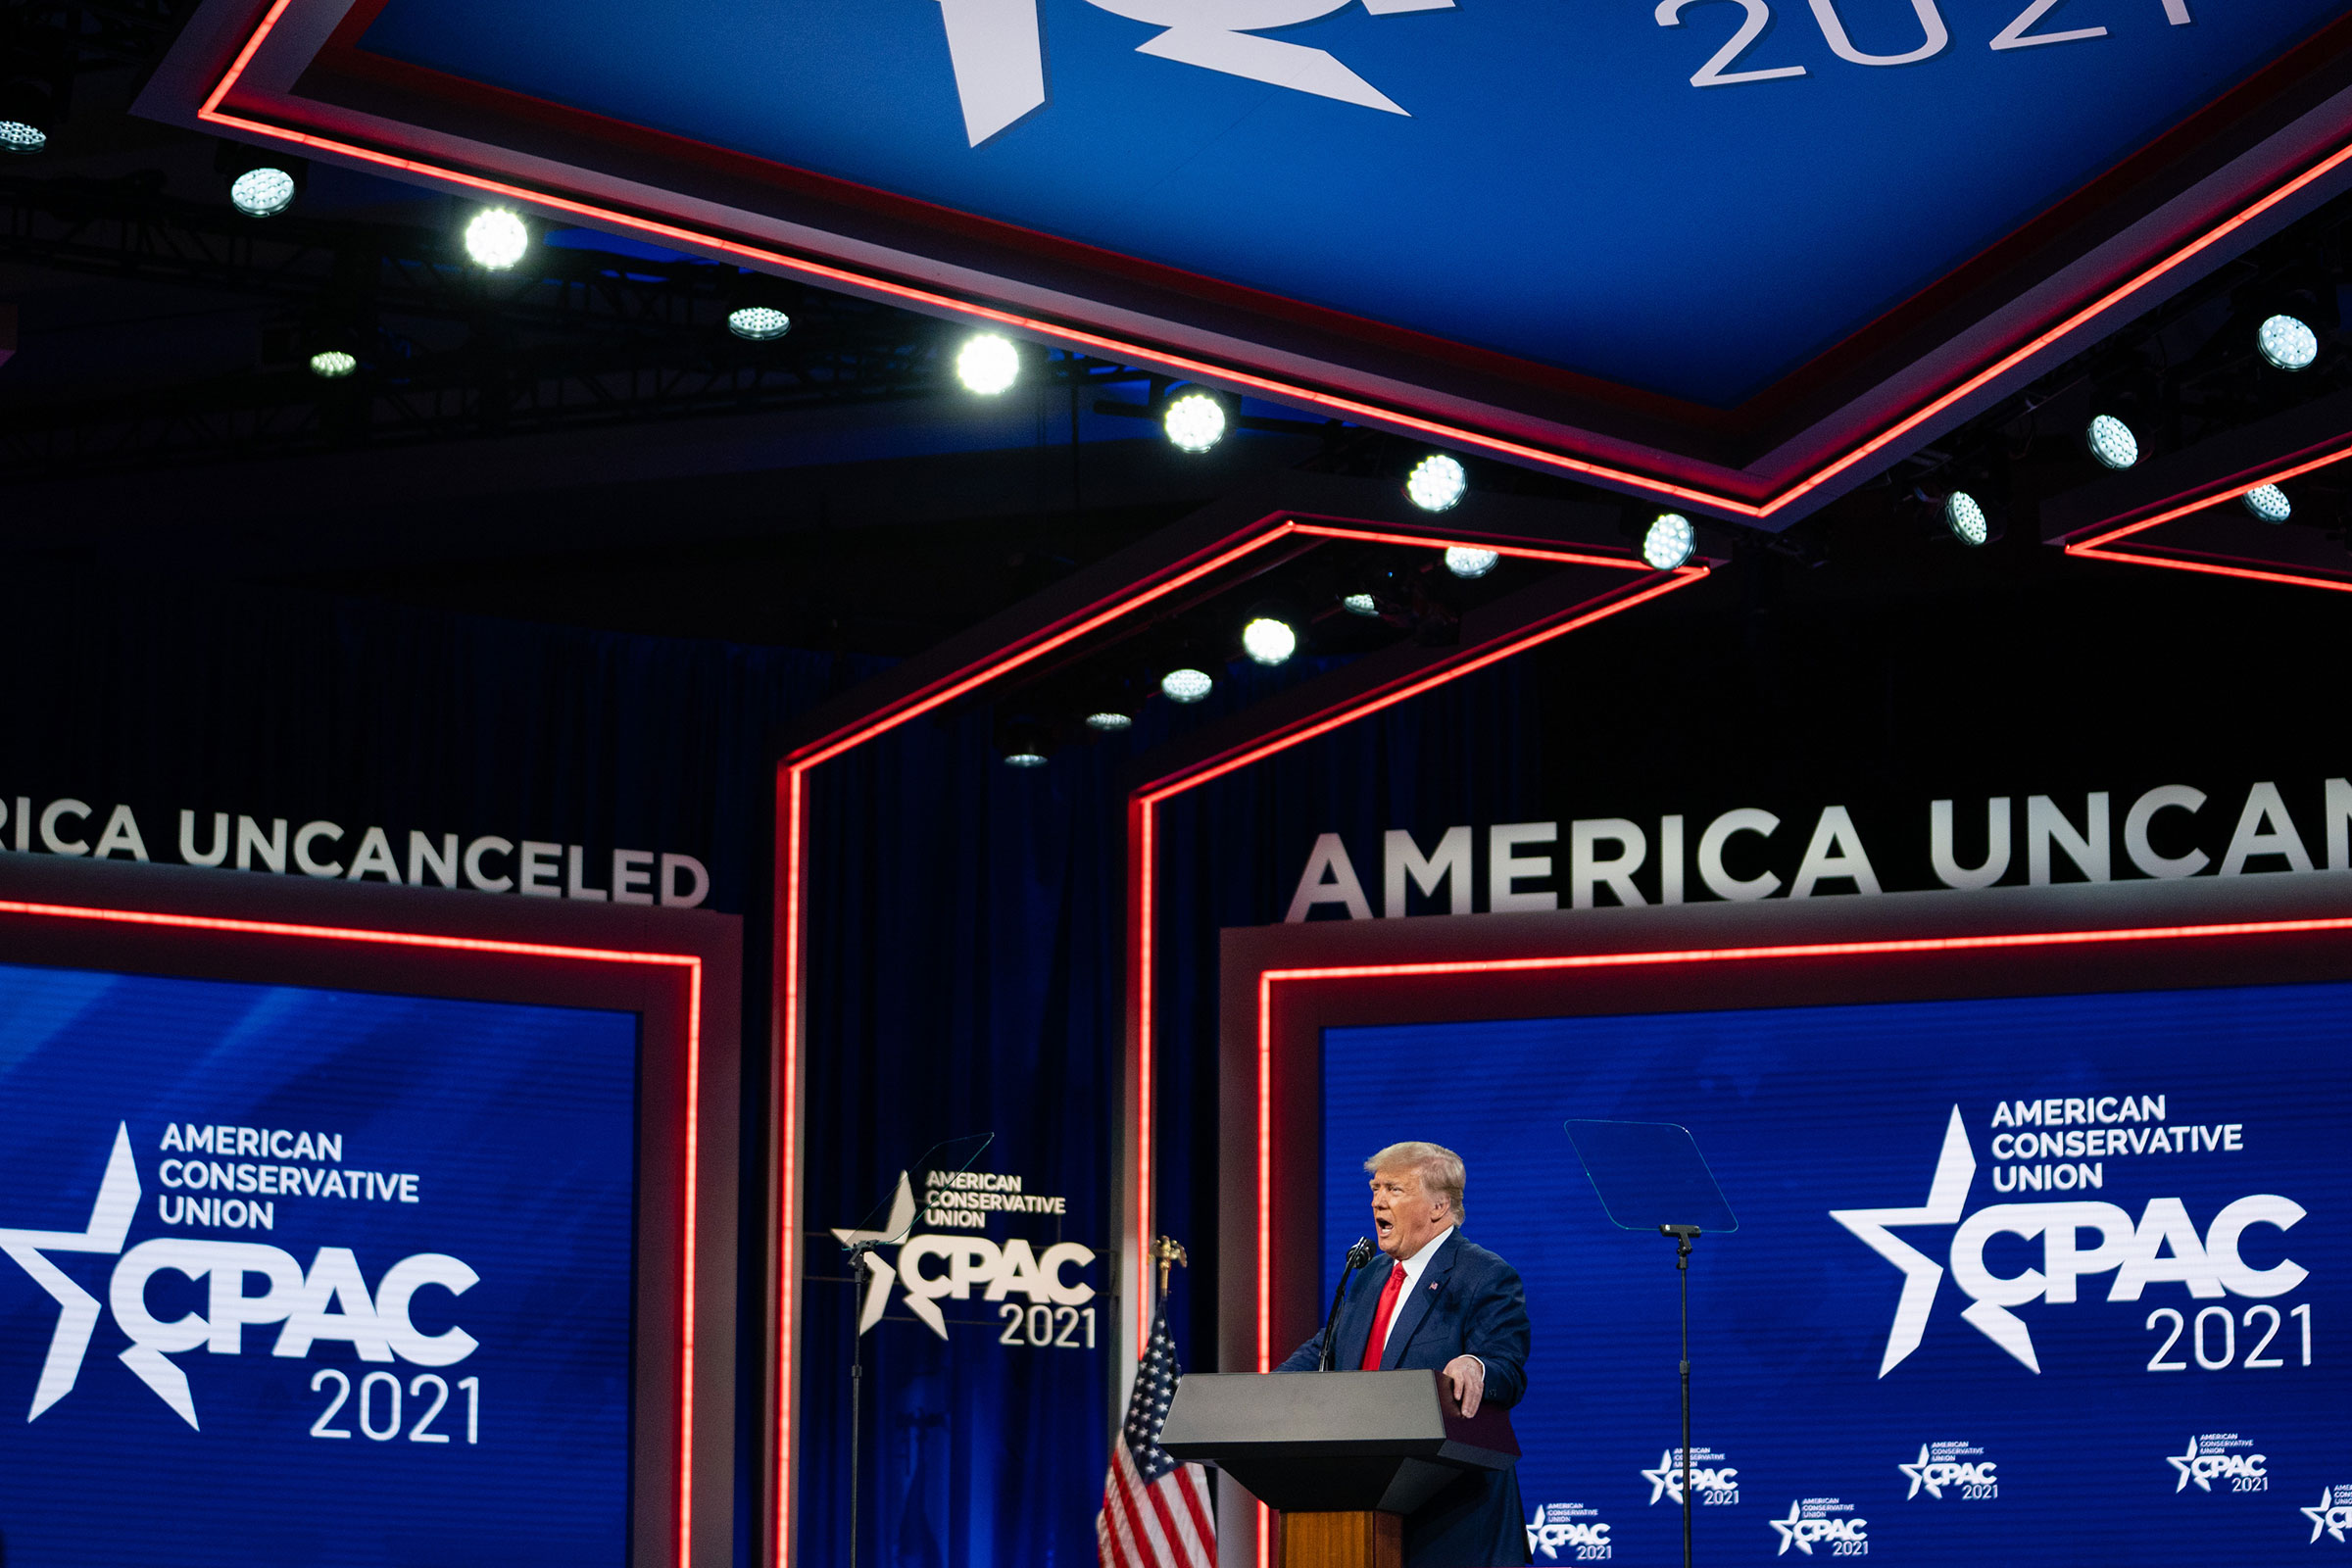 Former President Donald Trump speaks during the Conservative Political Action Conference in Orlando on Feb. 28, 2021.